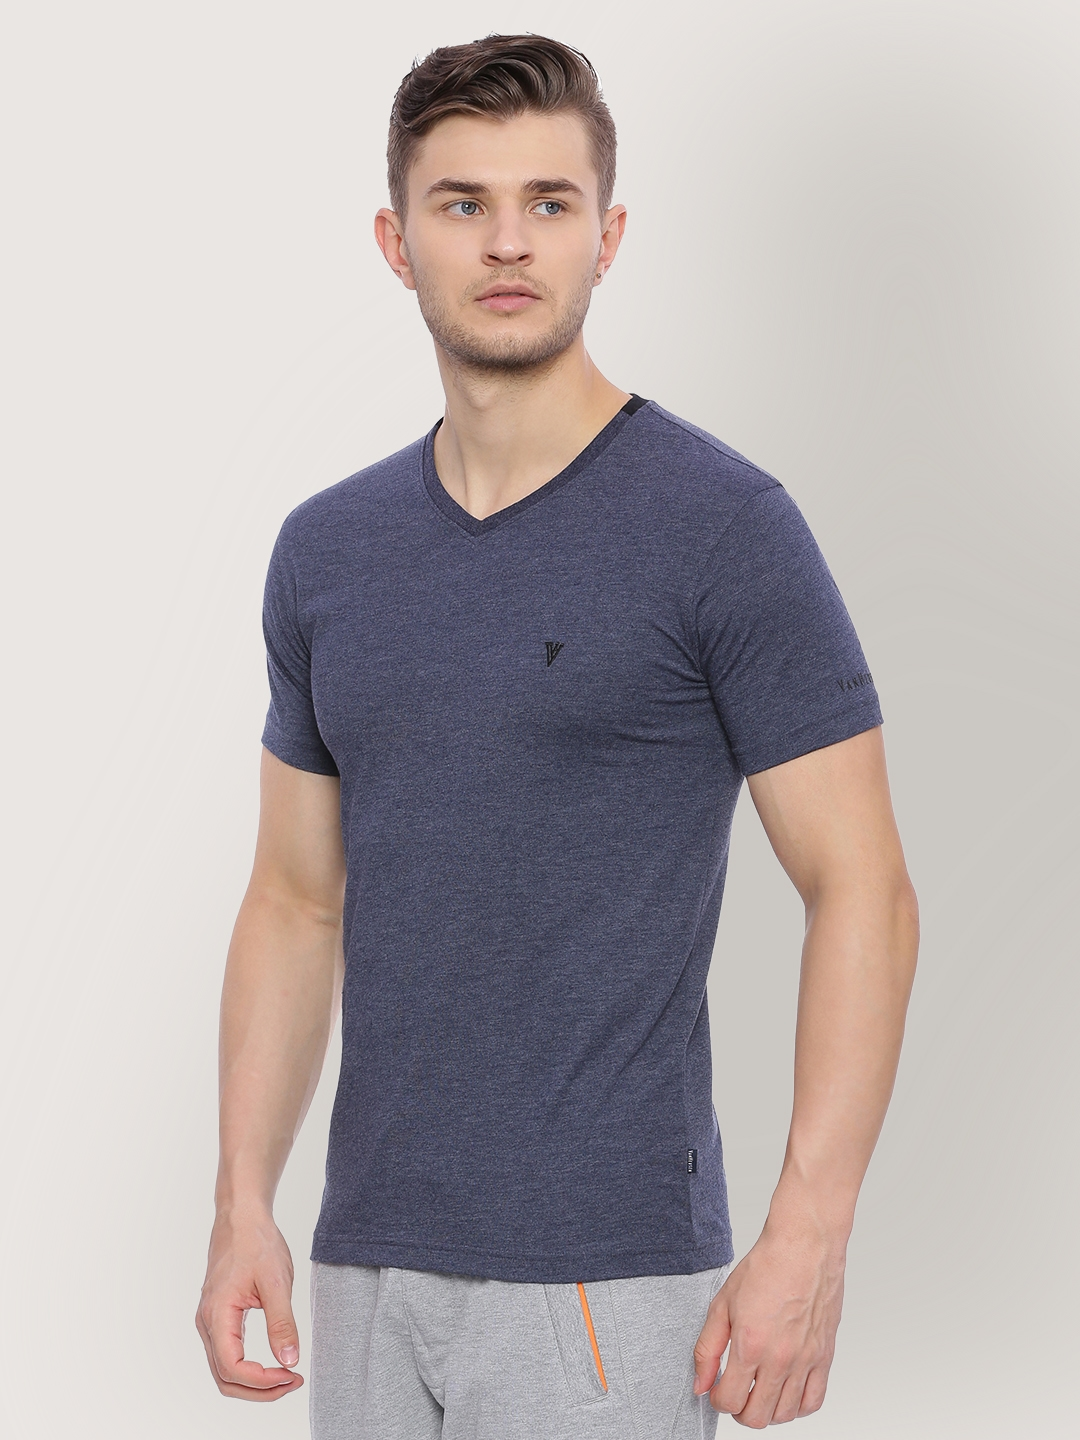 fca3480b19 Buy Van Heusen Men Blue Solid V Neck T Shirt - Tshirts for Men ...